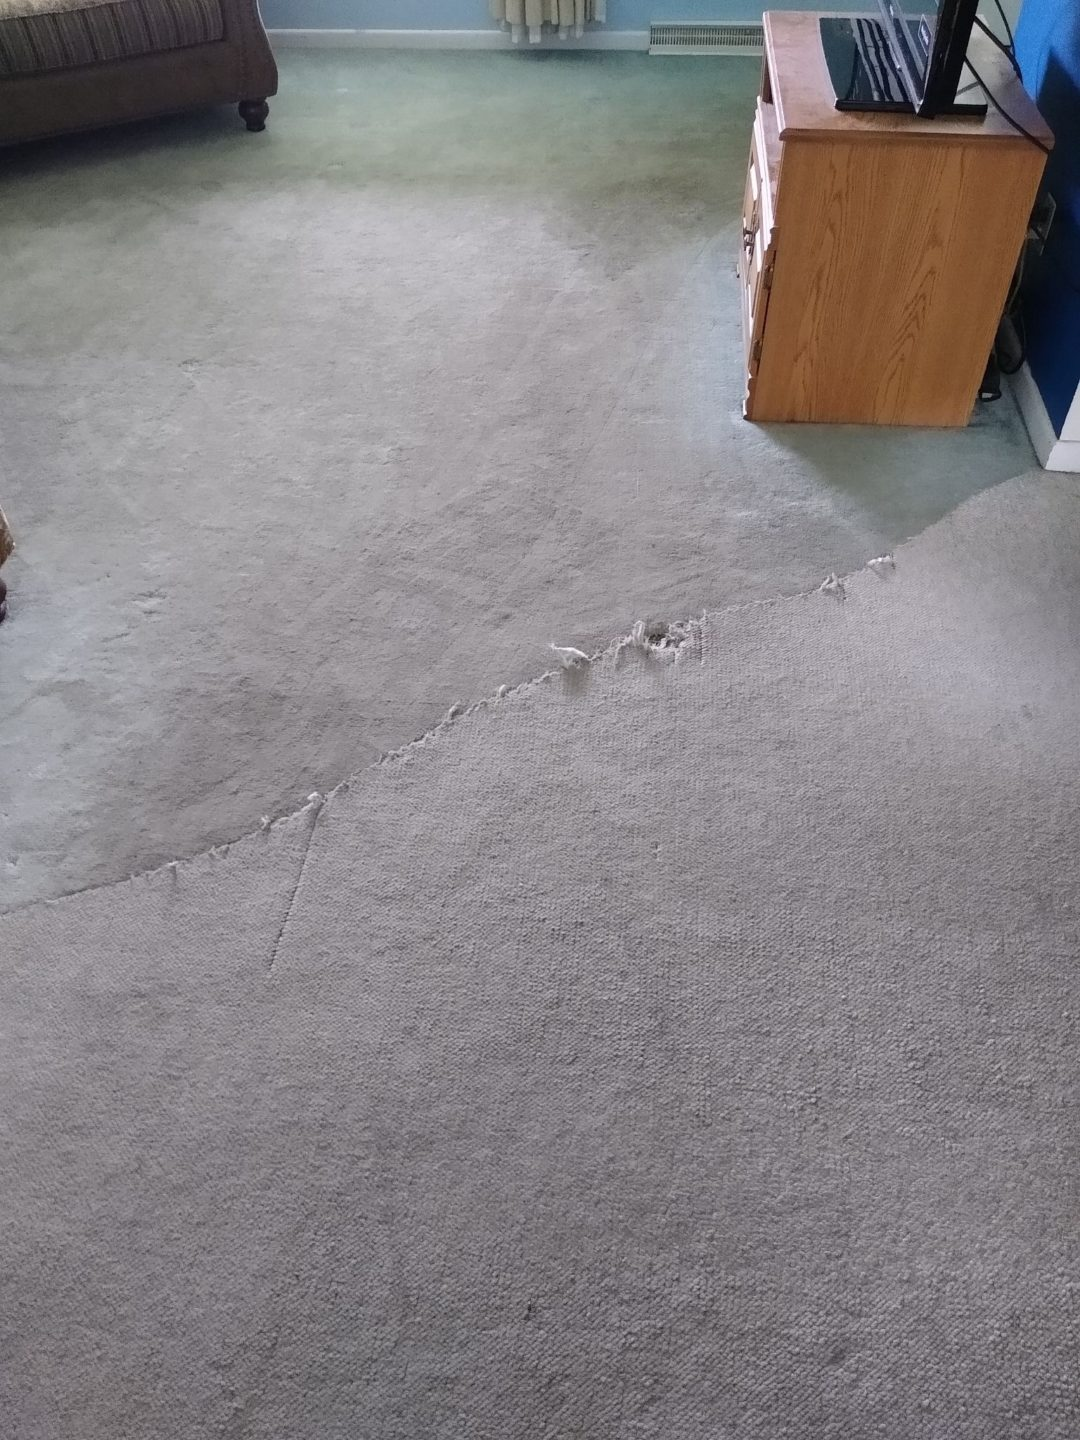 The wavy frayed carpet ugly floor contest entry photo